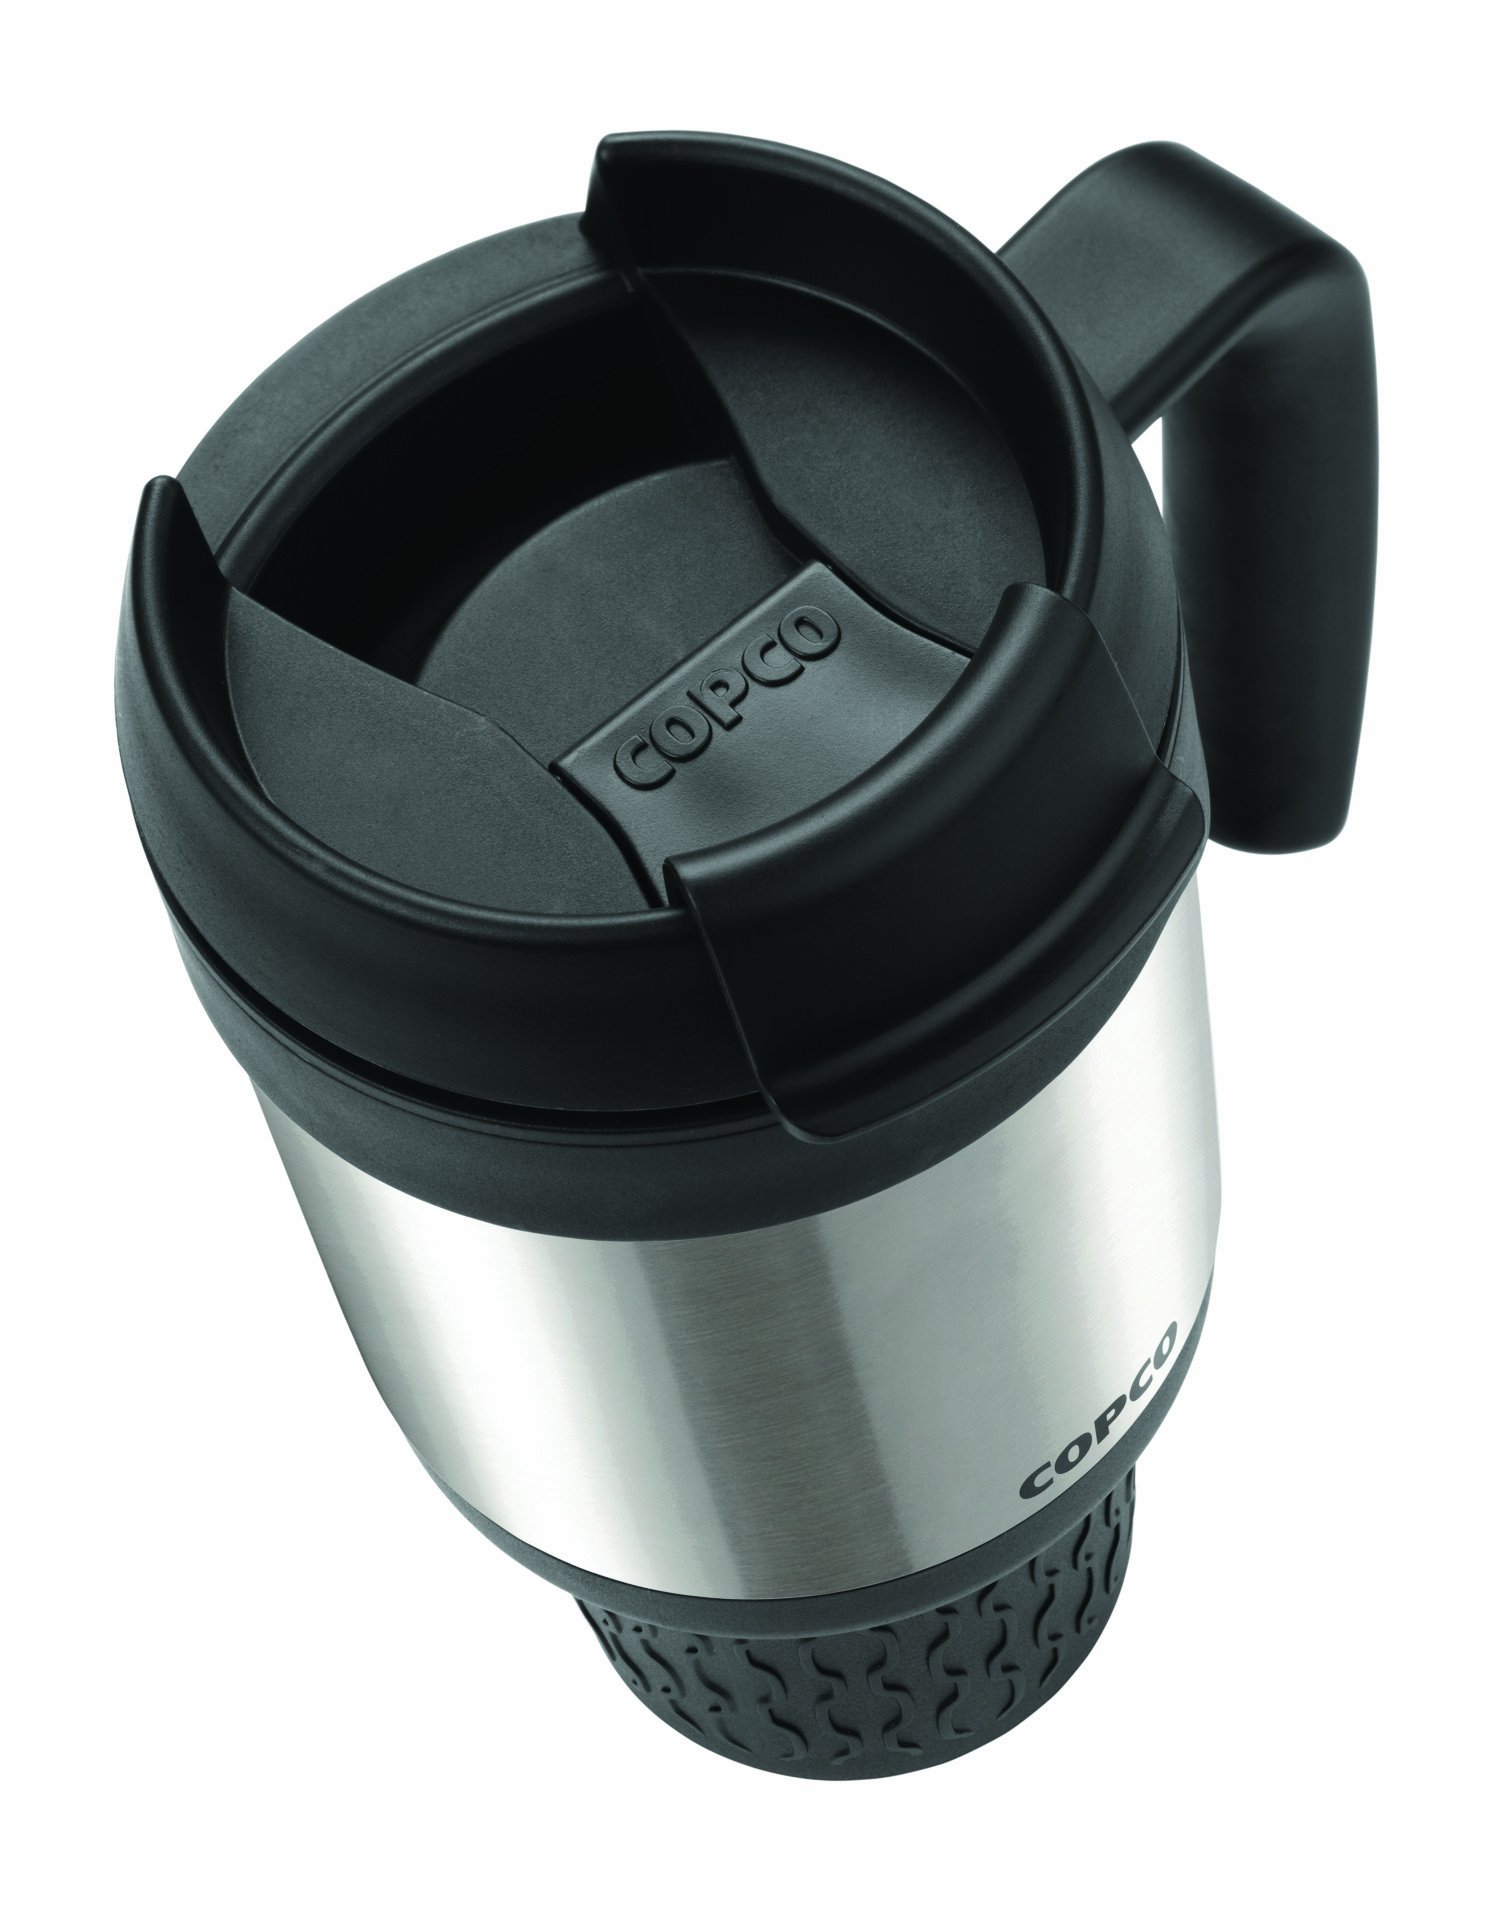 Copco 2510-1126 Stainless Steel Travel Mug with Contoured Handle, 24-Ounce, Steel